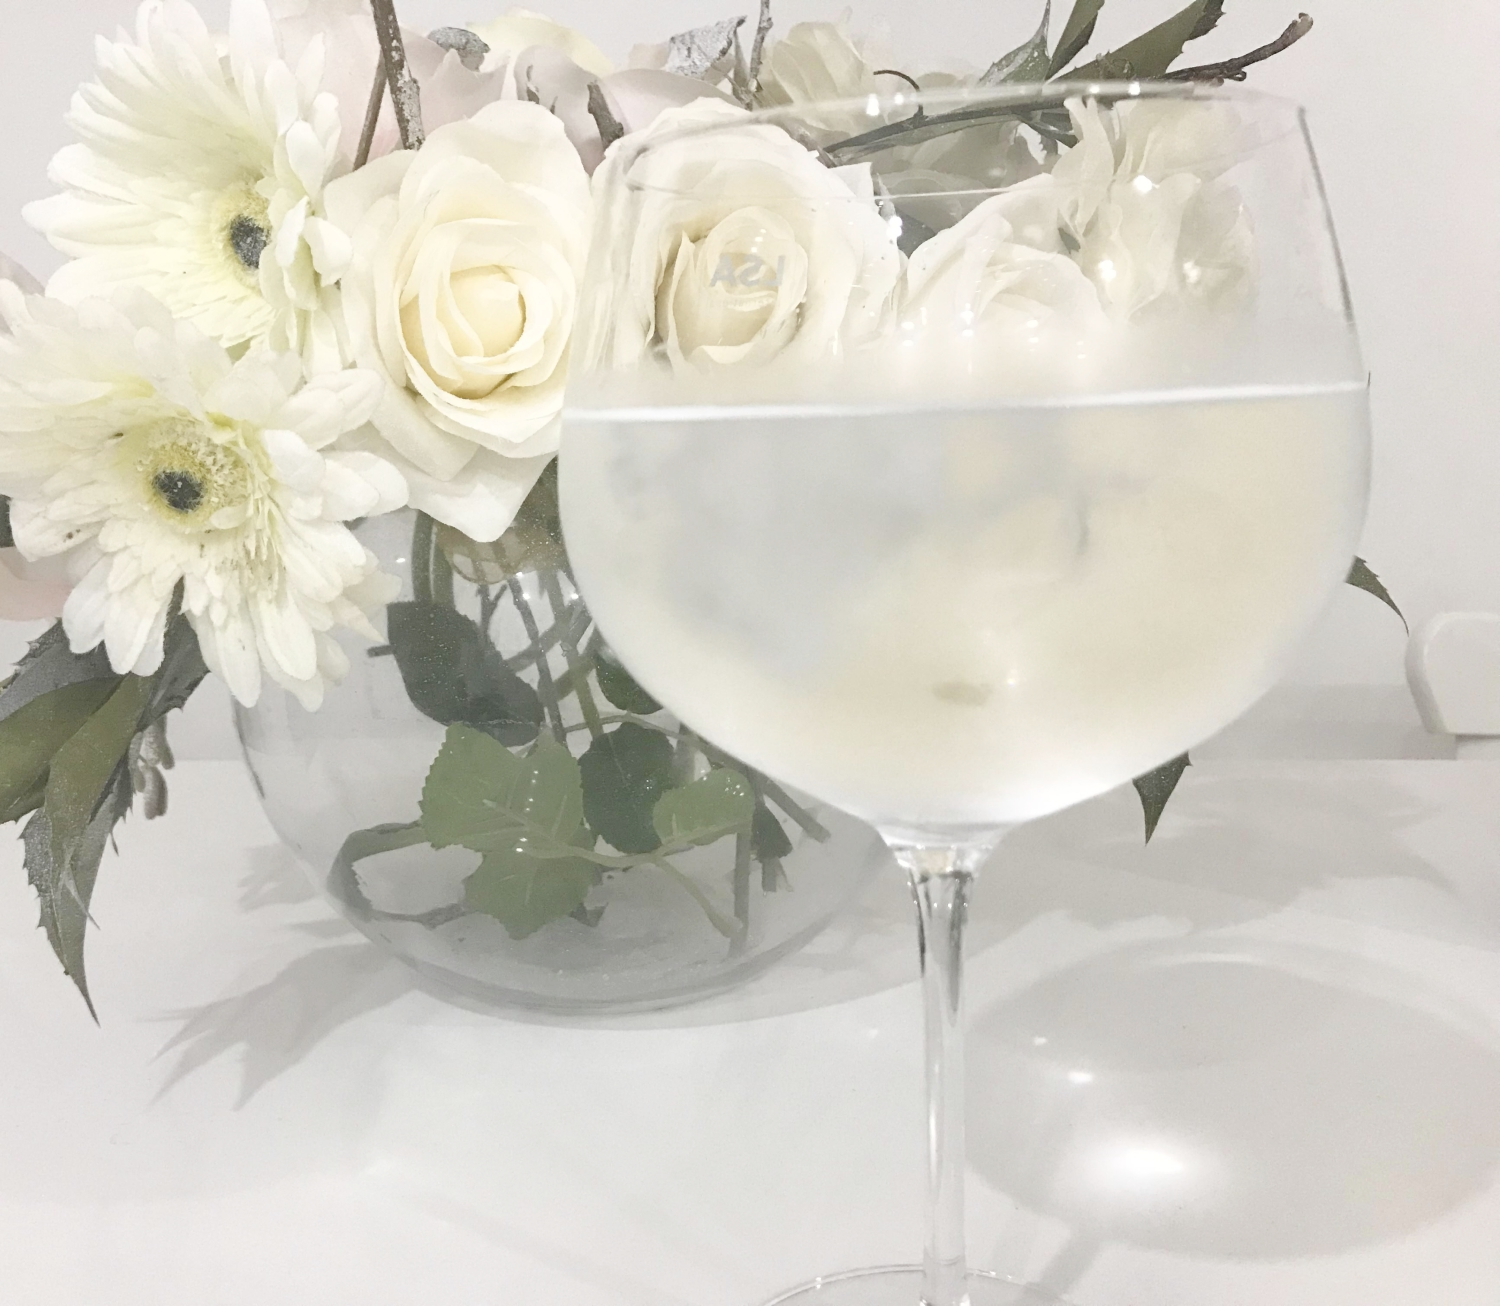 Glass of Water in a Wine Glass in front of a Vase of Flowers